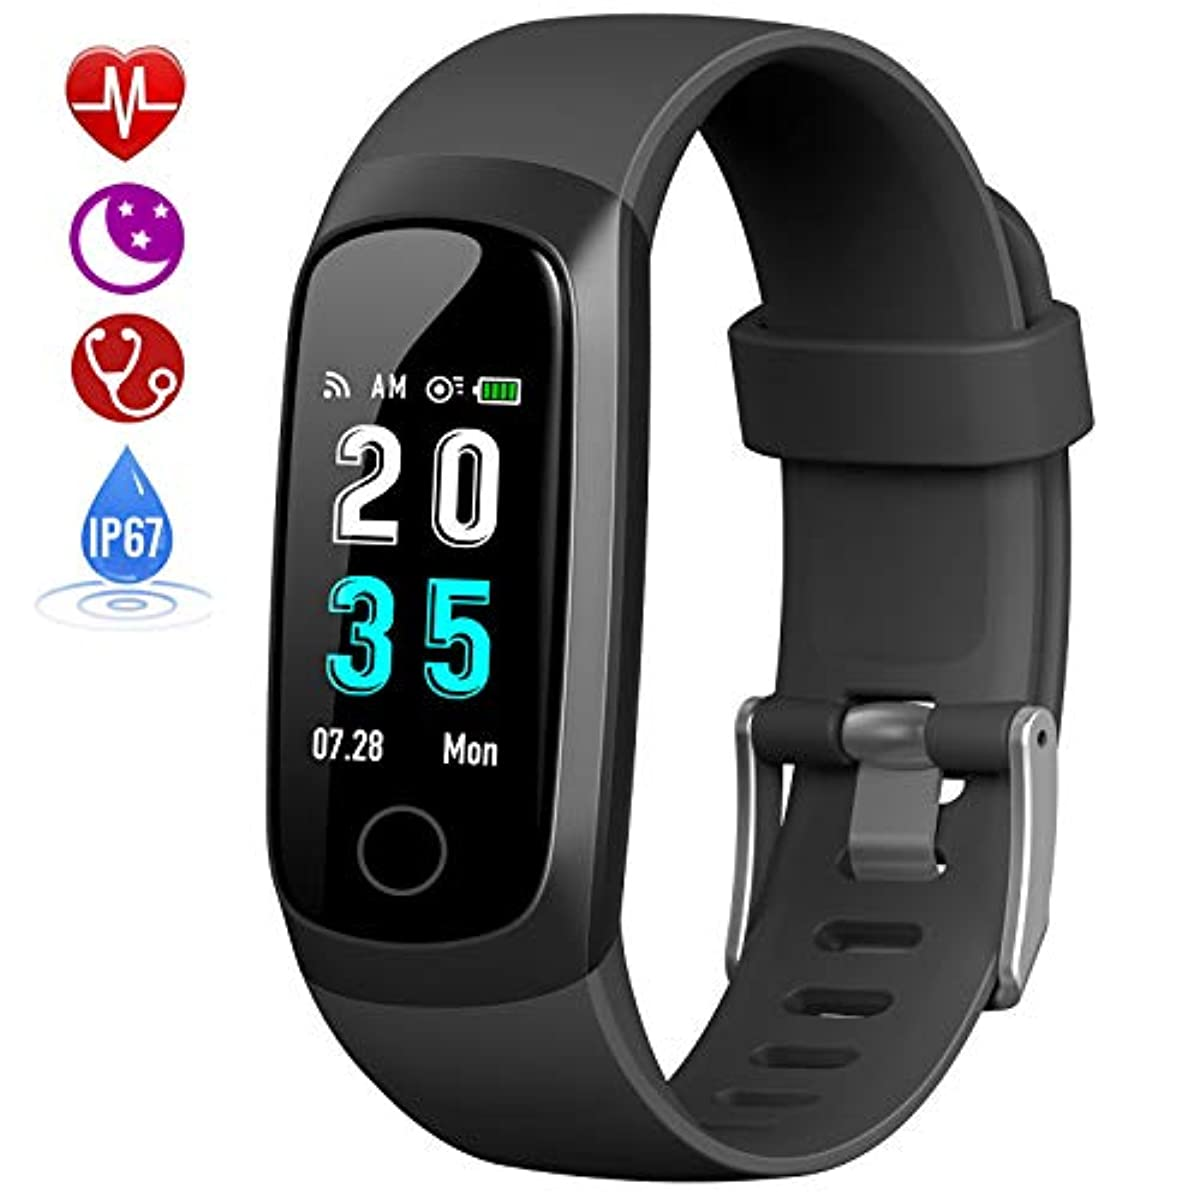 hetp fitness armband mit pulsmesser fitness tracker uhr. Black Bedroom Furniture Sets. Home Design Ideas